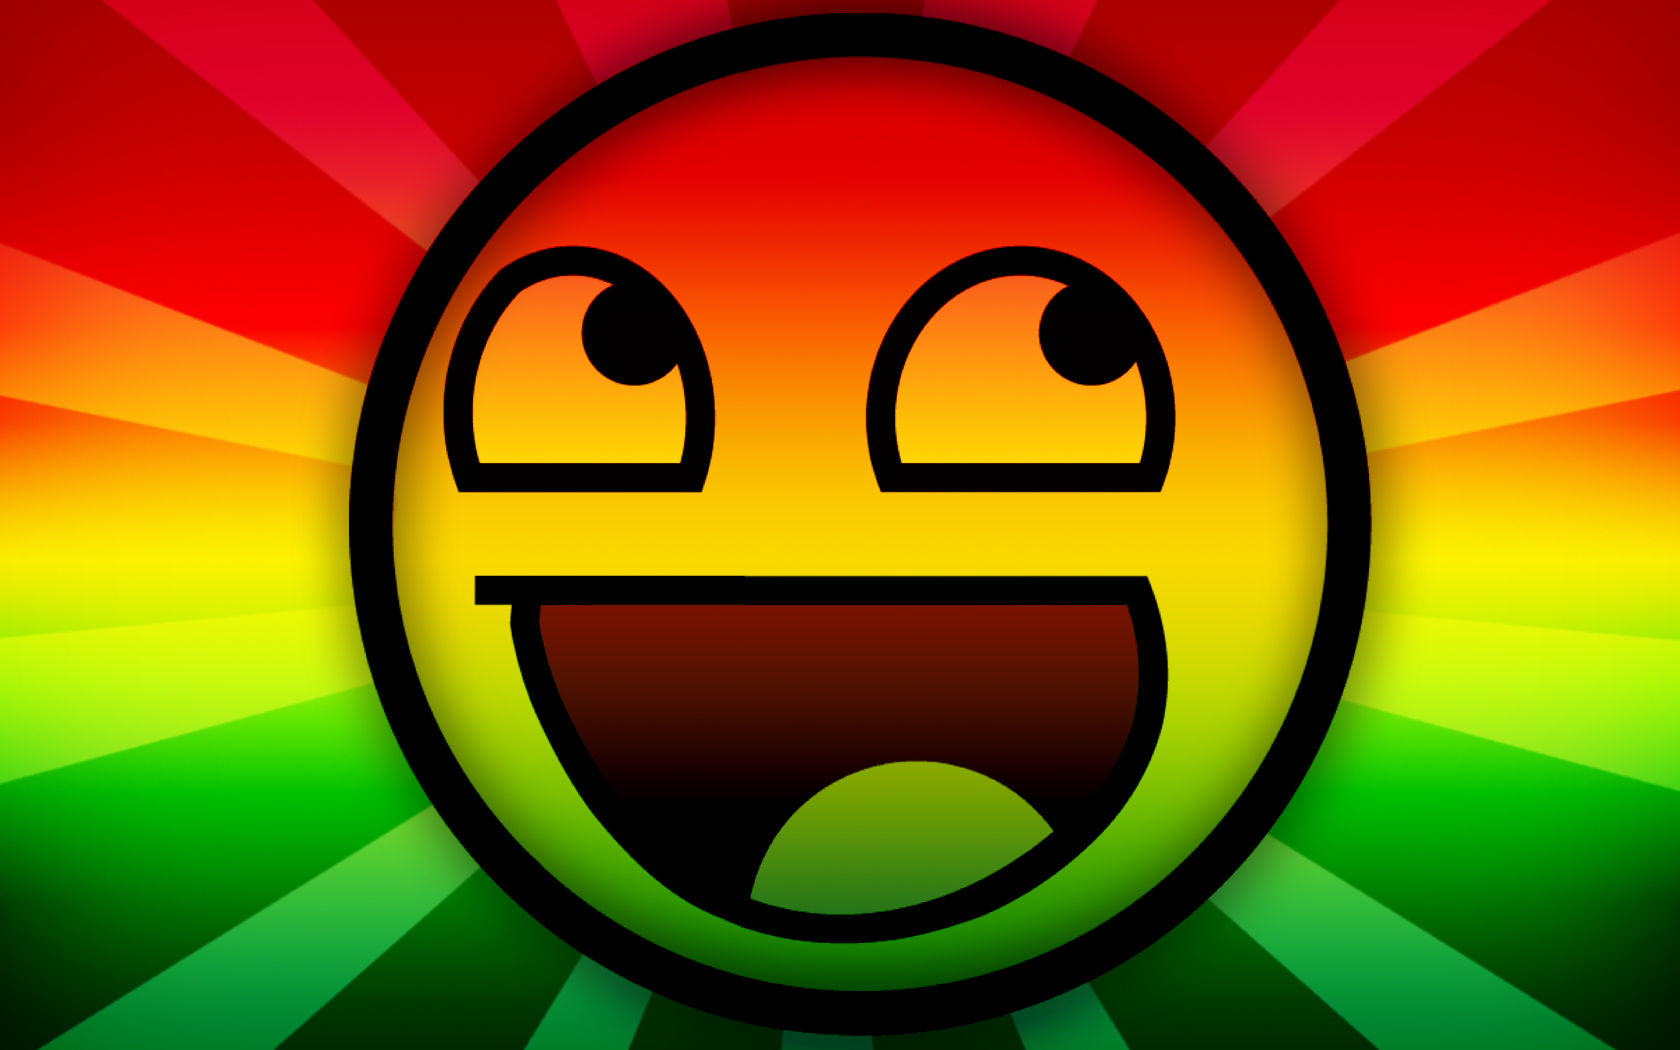 Image   35519] Awesome Face Epic Smiley Know Your Meme 1680x1050